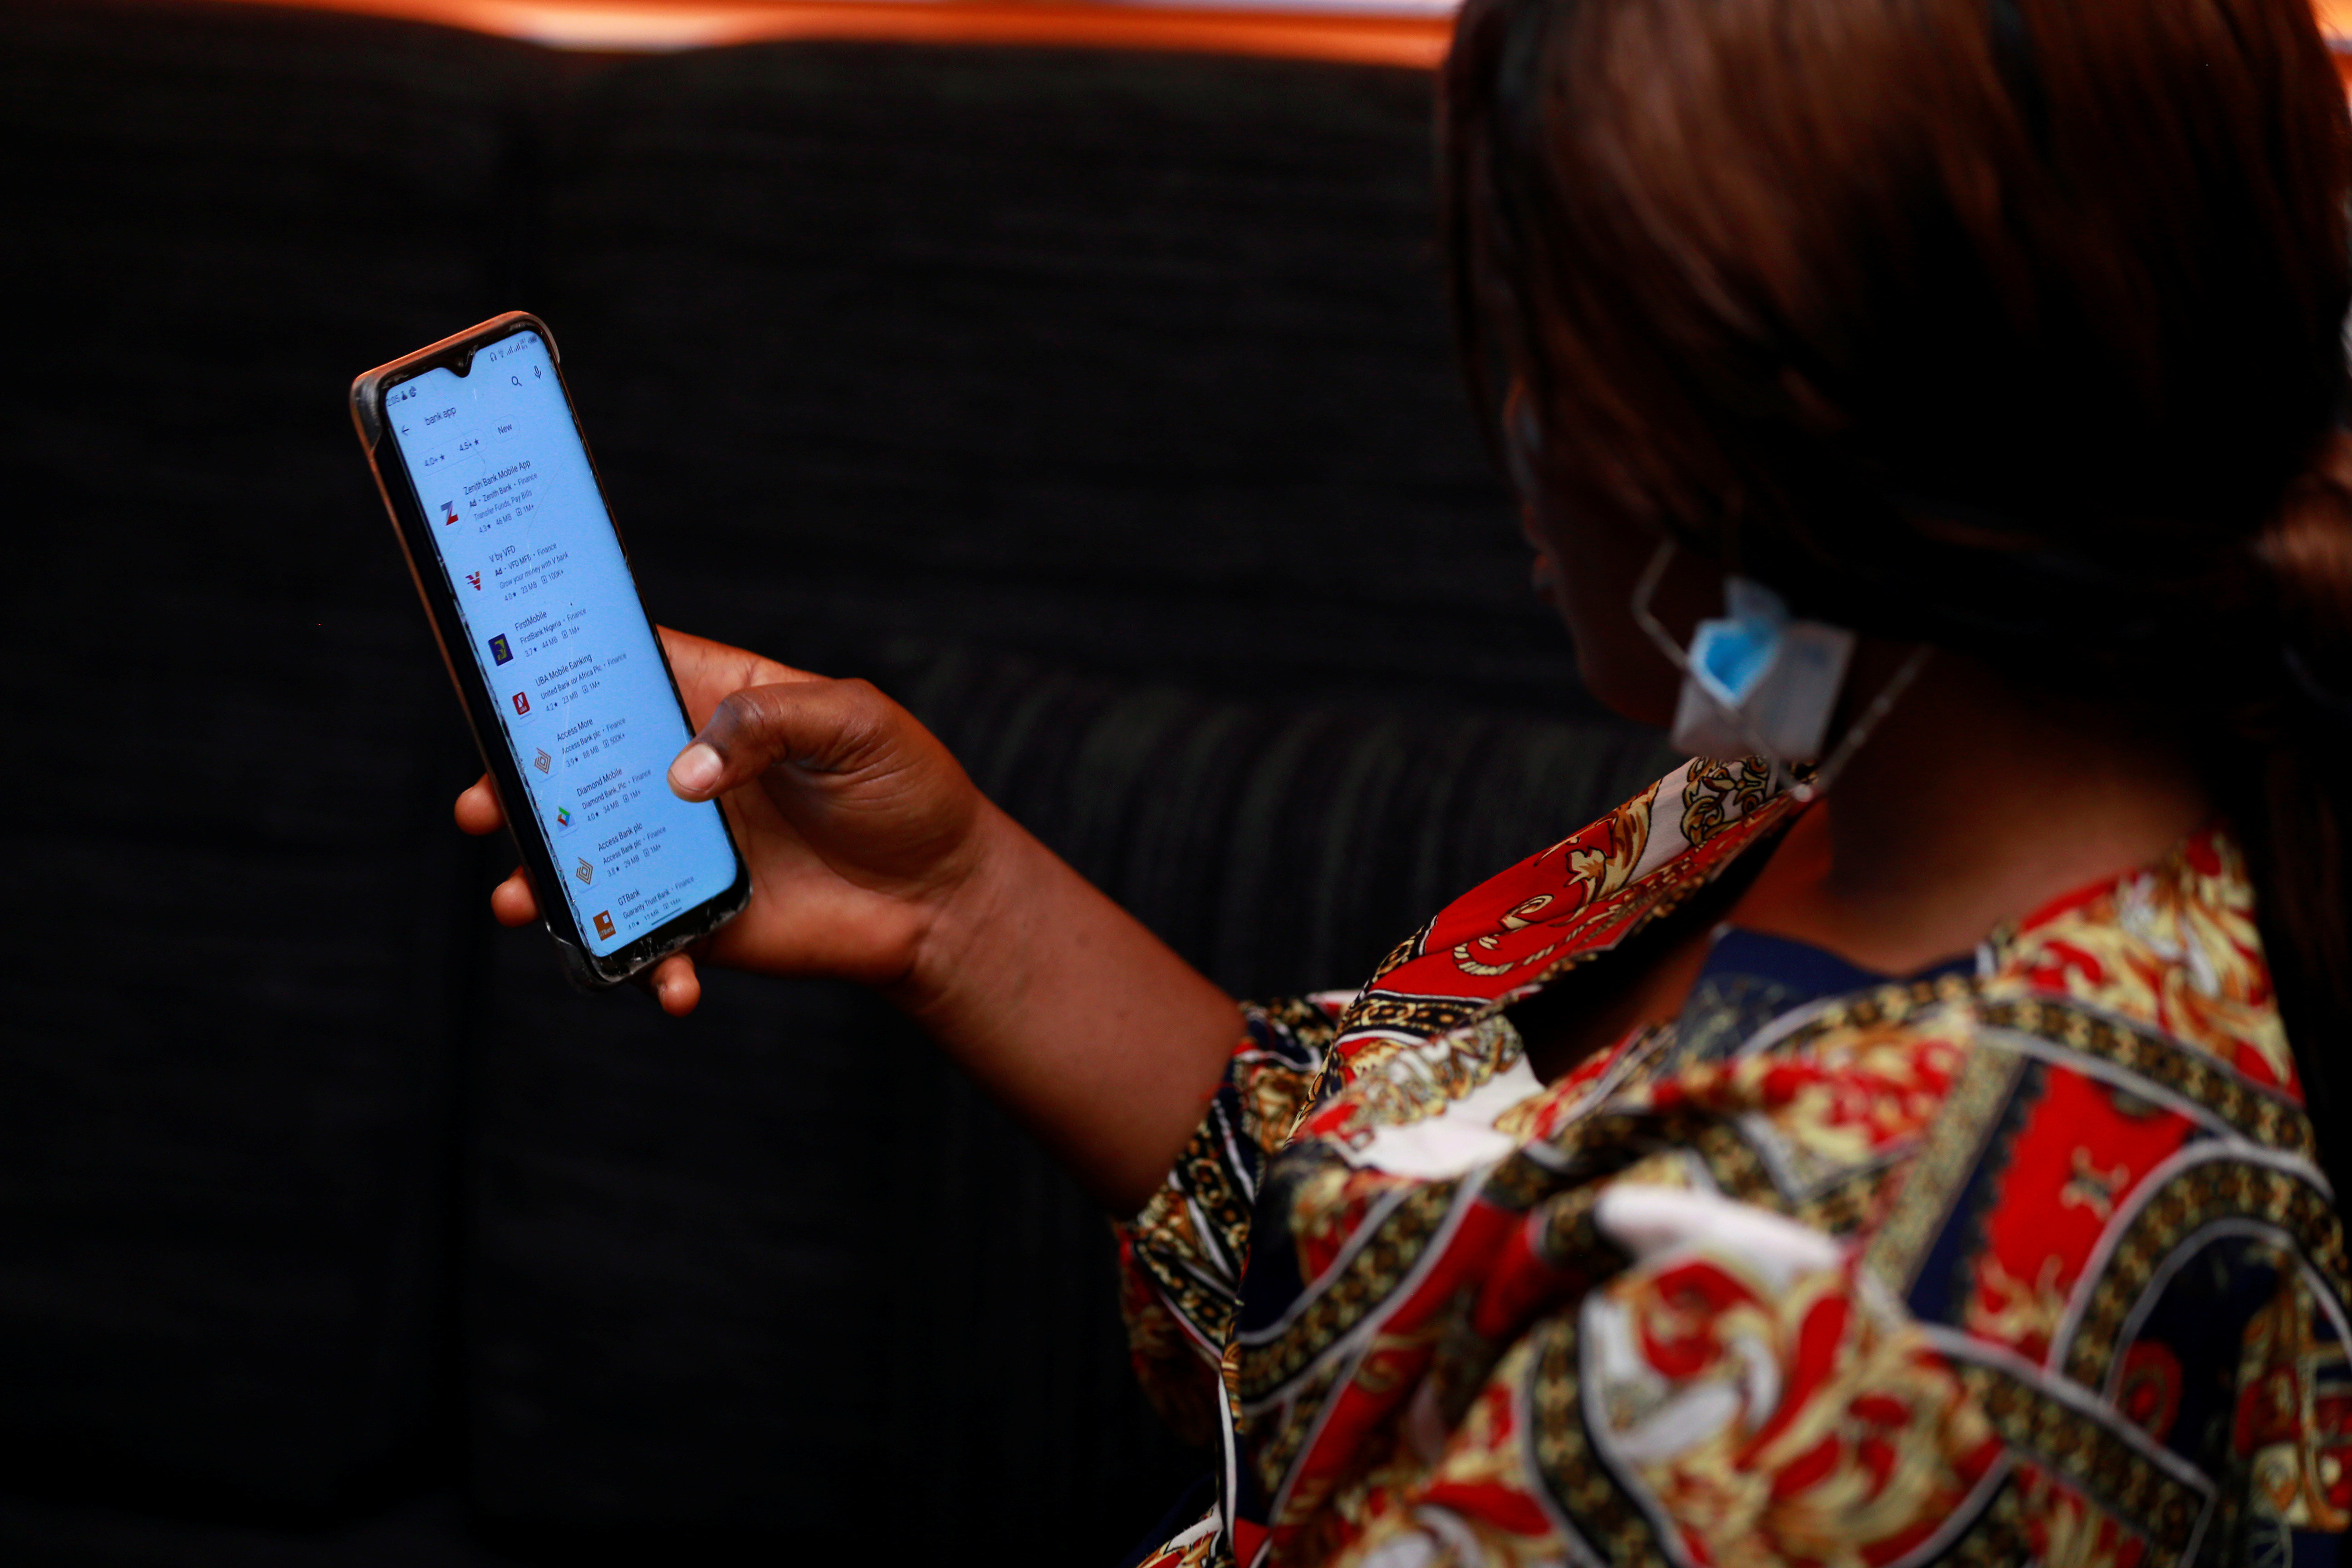 A woman looks at Nigerian banks apps on a smart phone in Abuja, Nigeria.